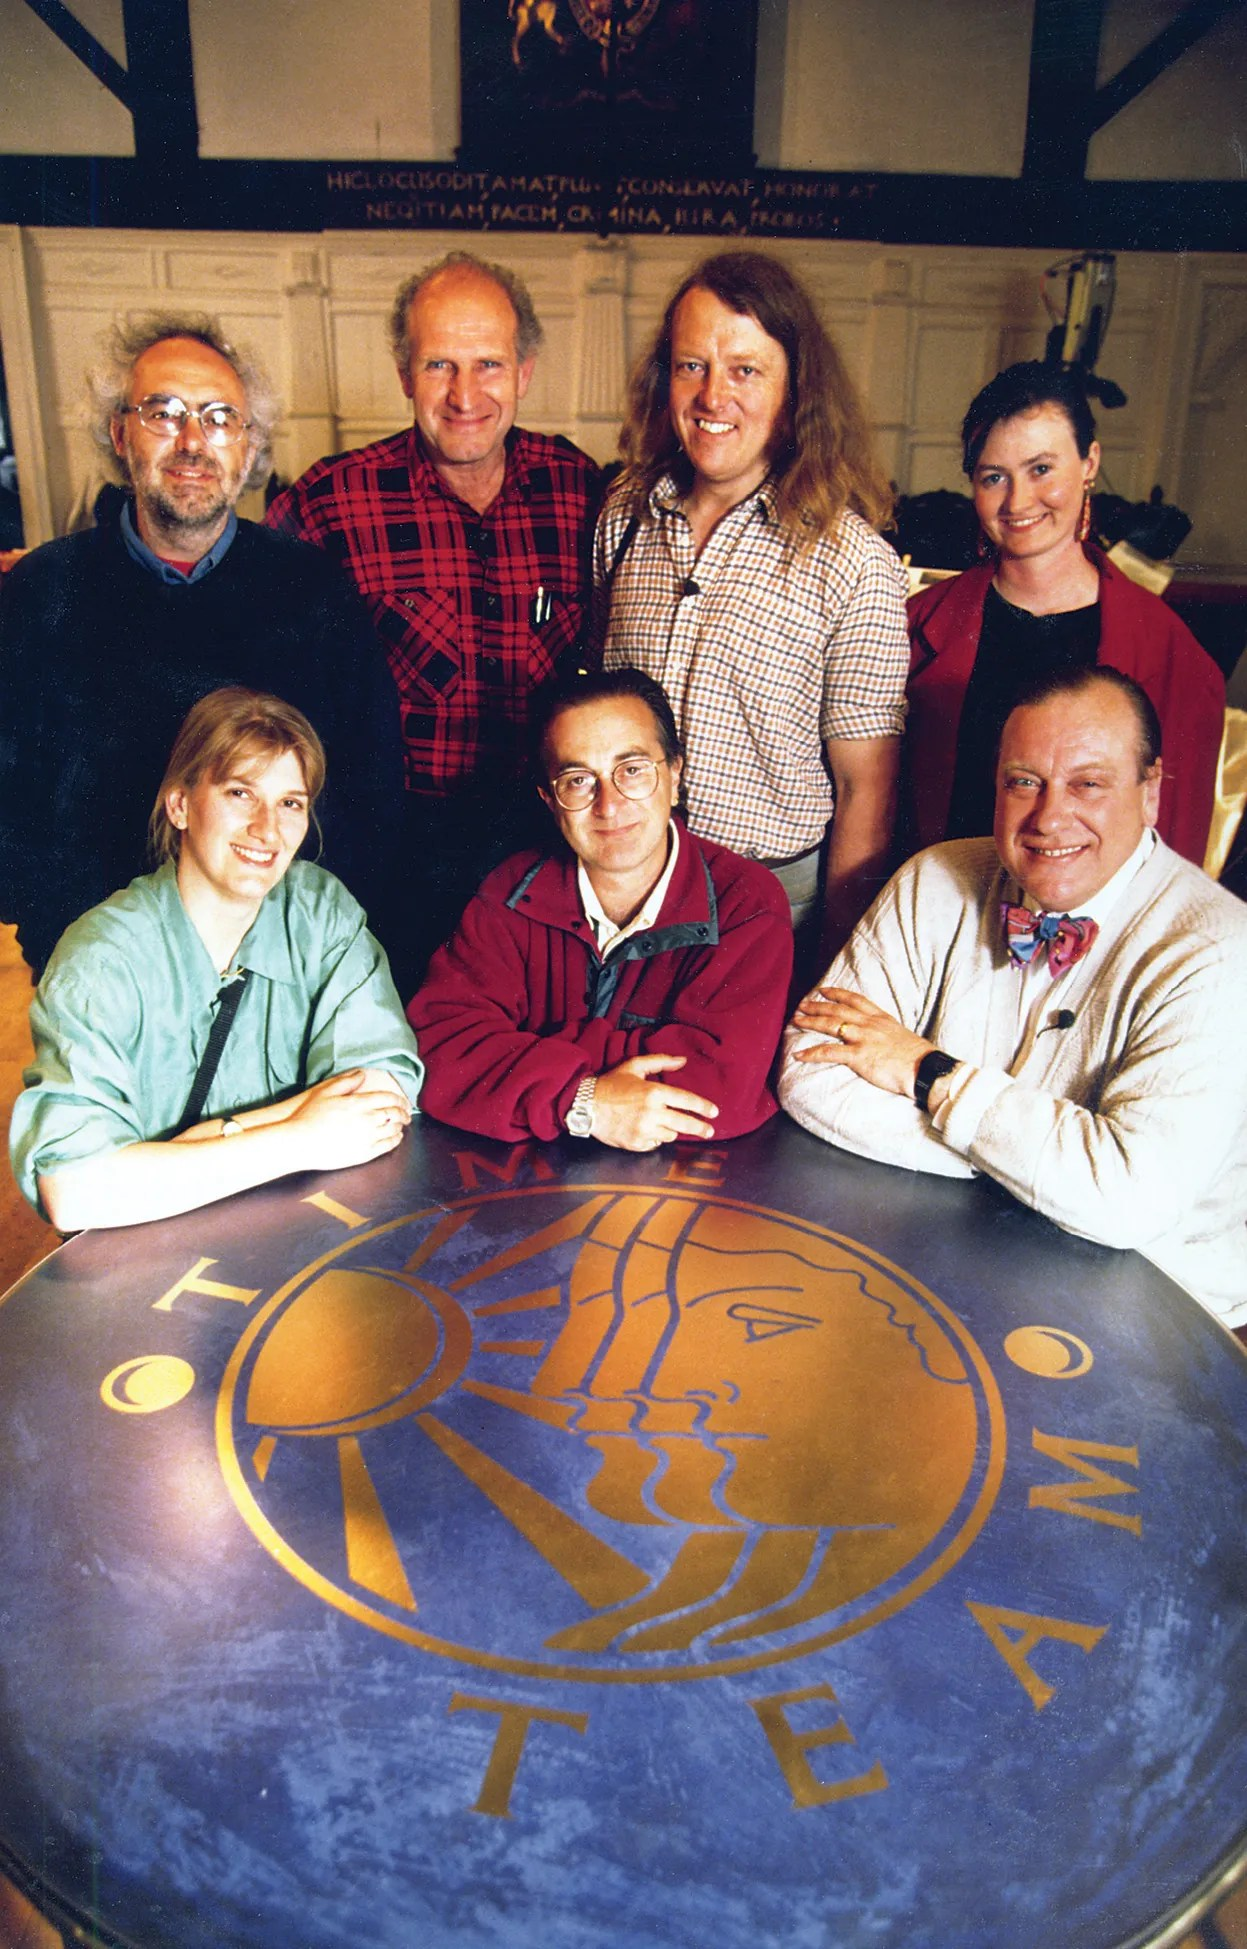 above The beginning of Time Team: season 1 stalwarts (from left to right) Mick Aston, Victor Ambrus, Phil Harding, Geraldine Barber, Carenza Lewis, Tony Robinson, and Robin Bush.